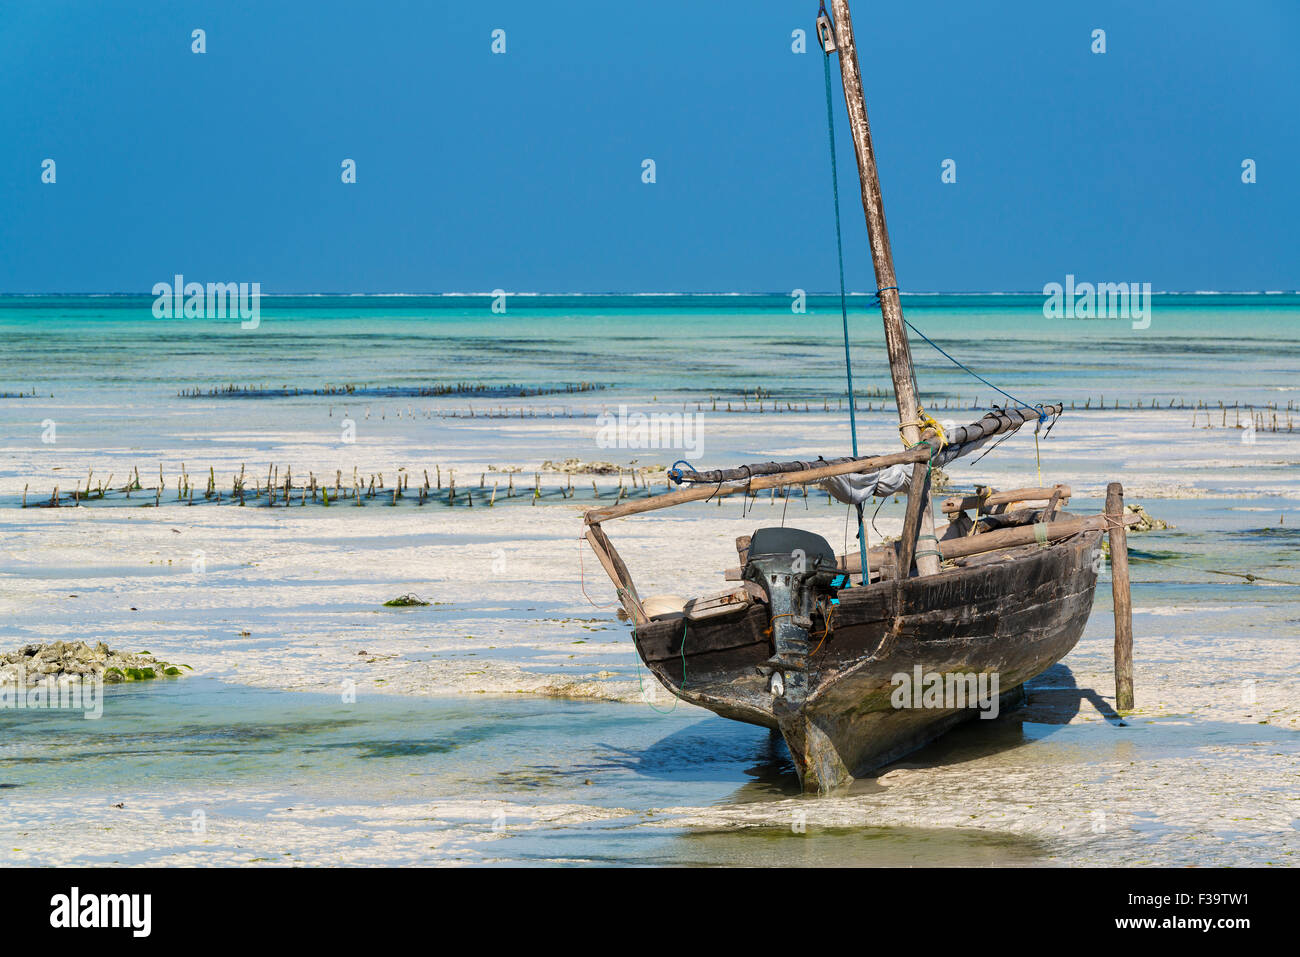 Low Tide in Zanzibar - Stock Image